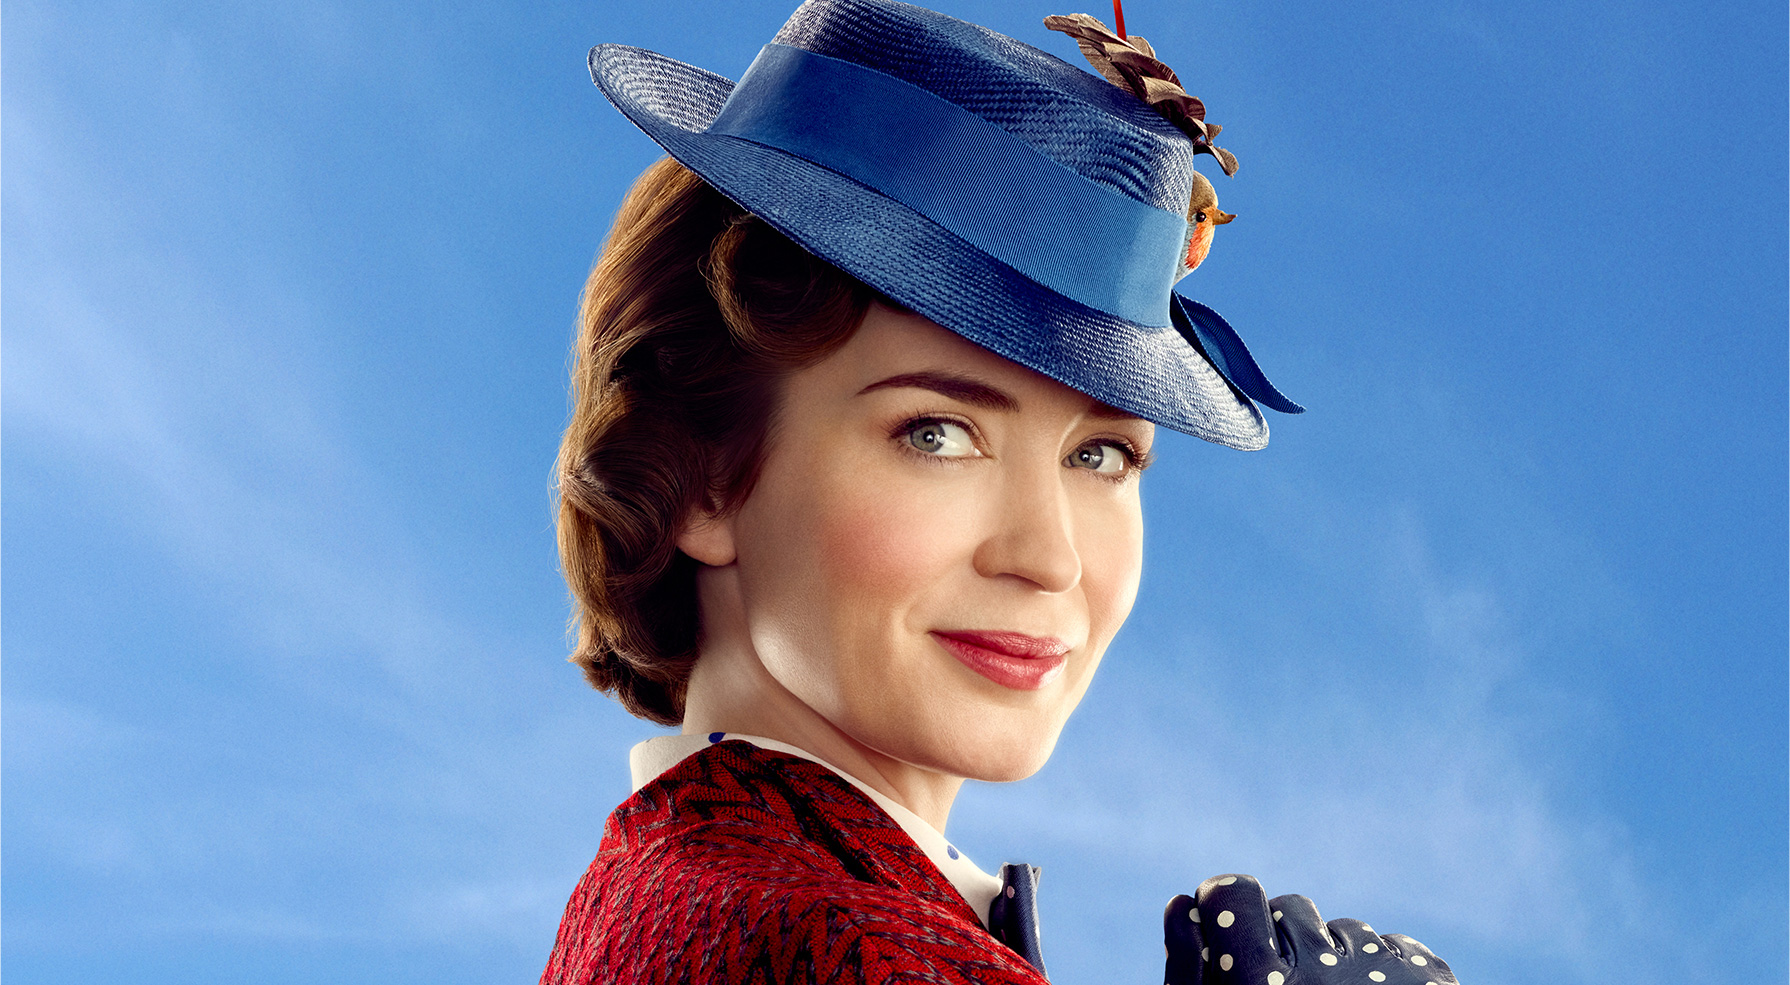 Mary Poppins is back